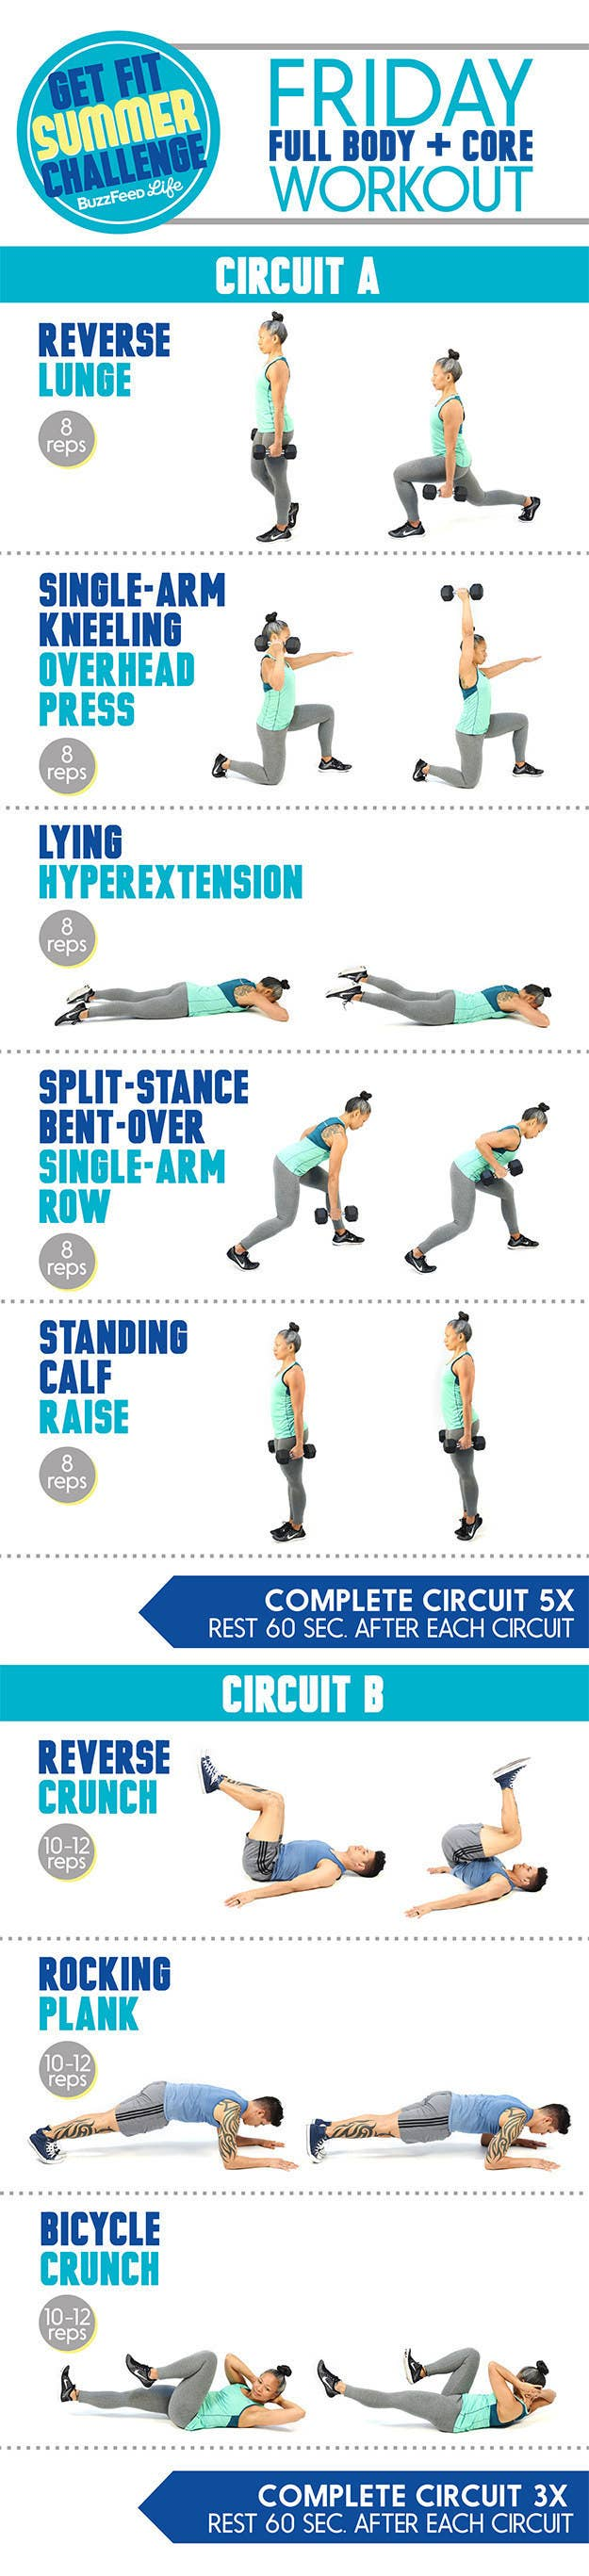 This Is The Only Summer Workout Plan You Need Guys Were Loving That Circuit I Posted Yesterday Heres Click Here For More Complete Instructions Fridayx27s Including Animated Gifs